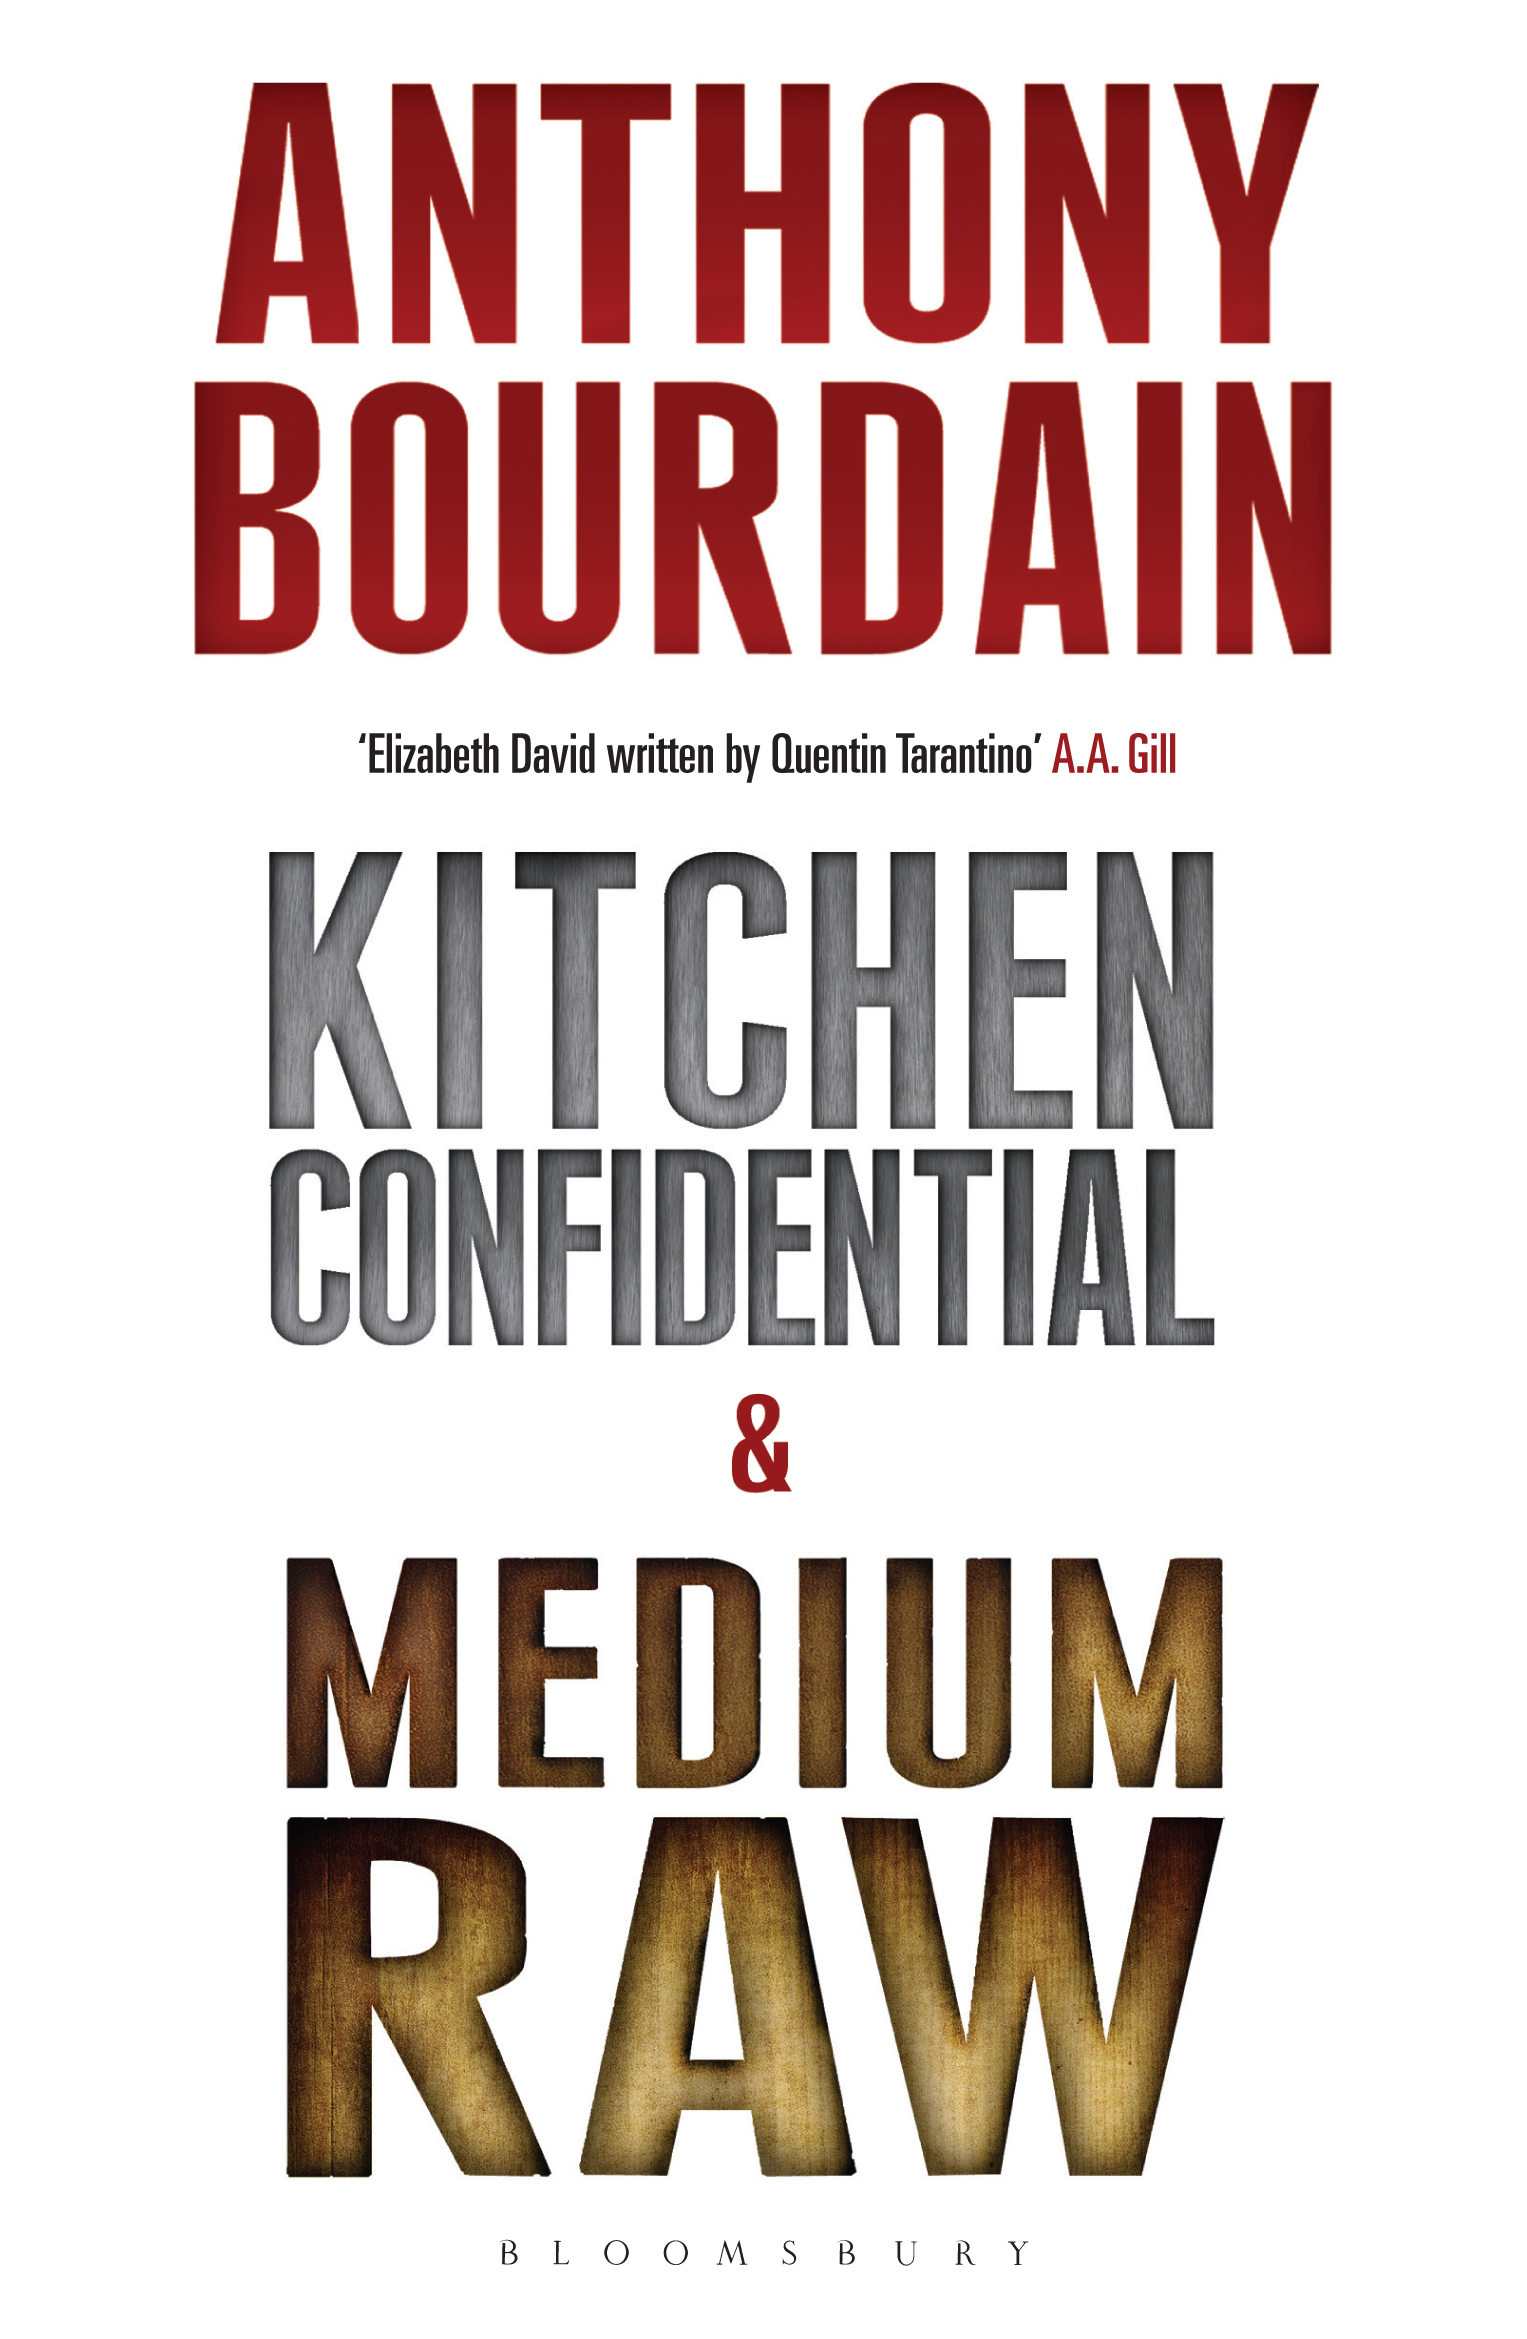 Tony Bourdain boxset: Kitchen Confidential & Medium Raw By: Anthony Bourdain